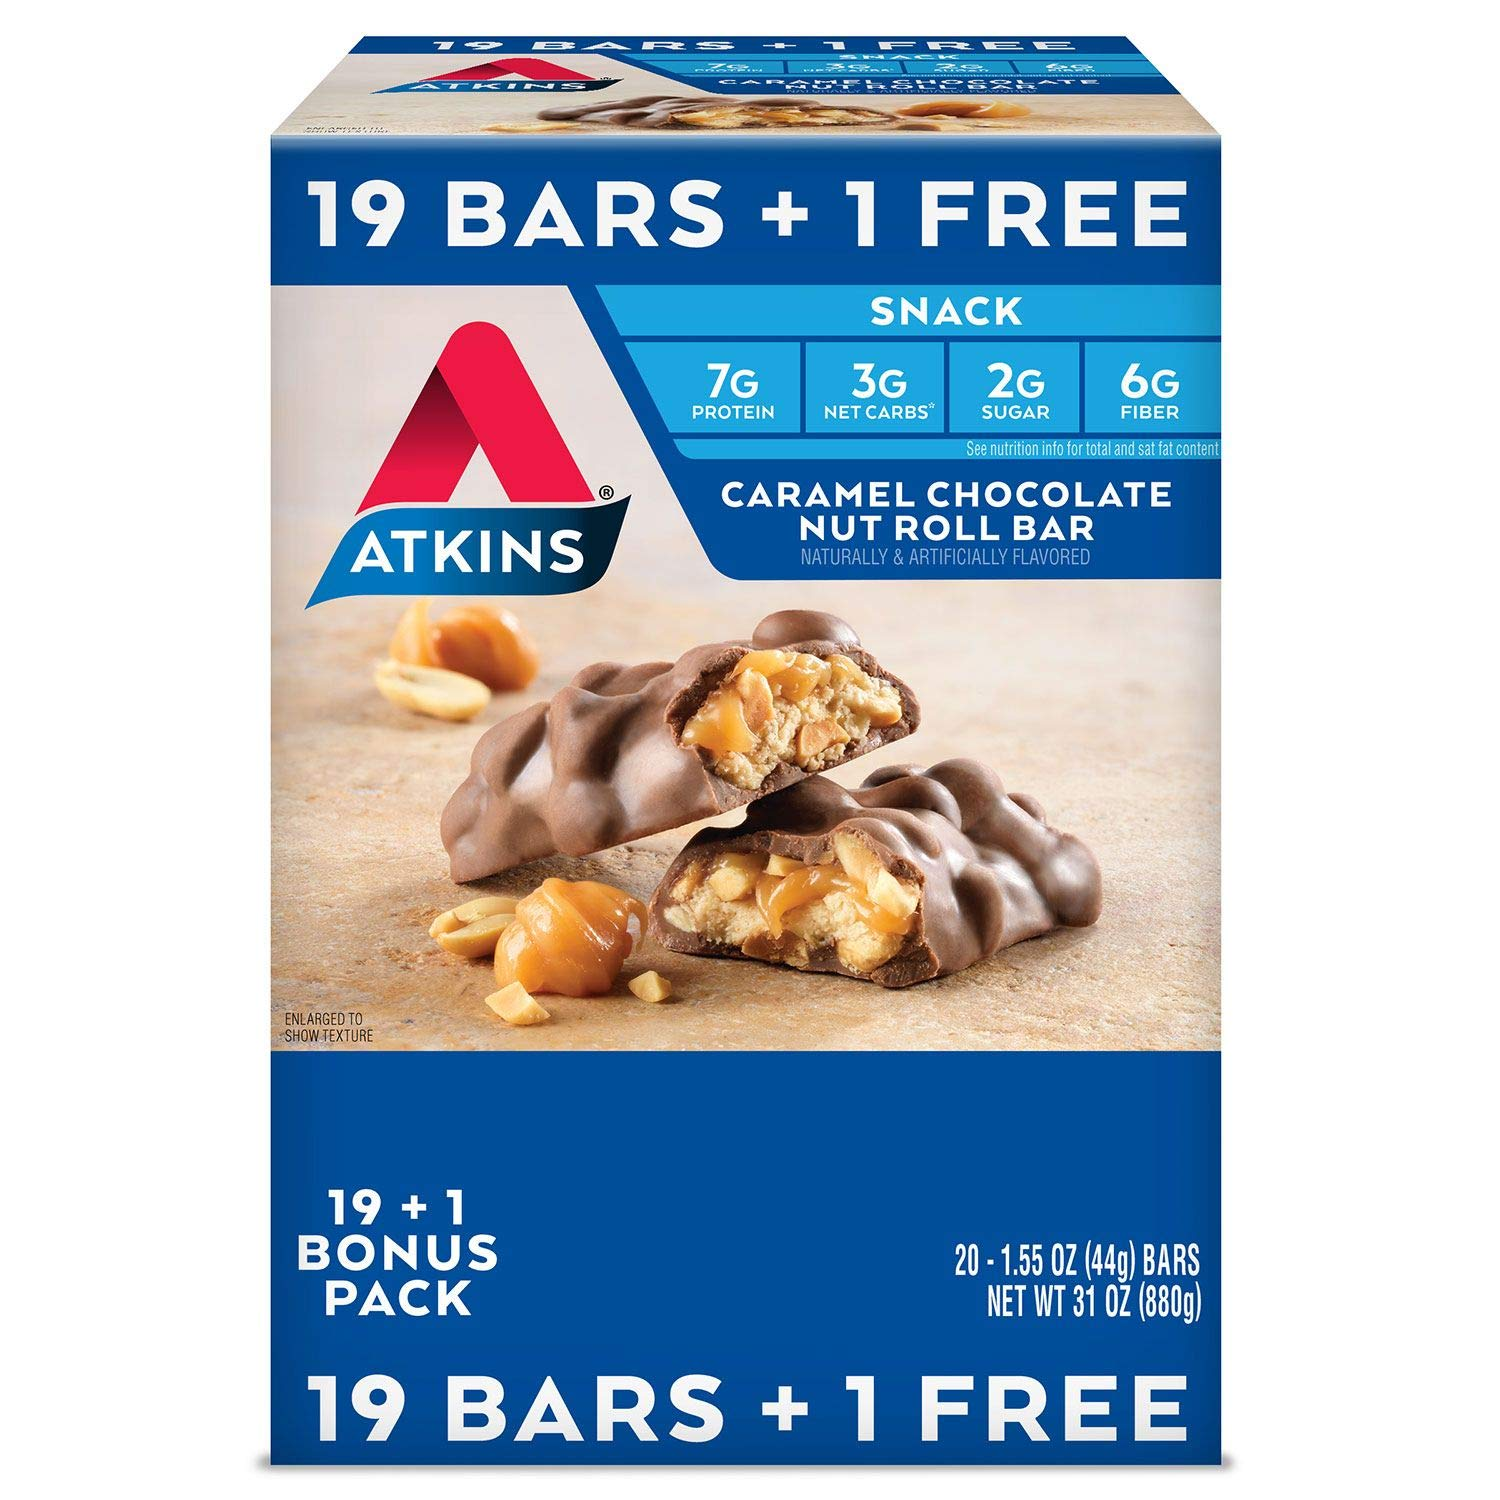 Atkins Snack Bar,Delivery Within 2-3 DAYS (20ct Caramel Chocolate Nut Roll) by Atkins